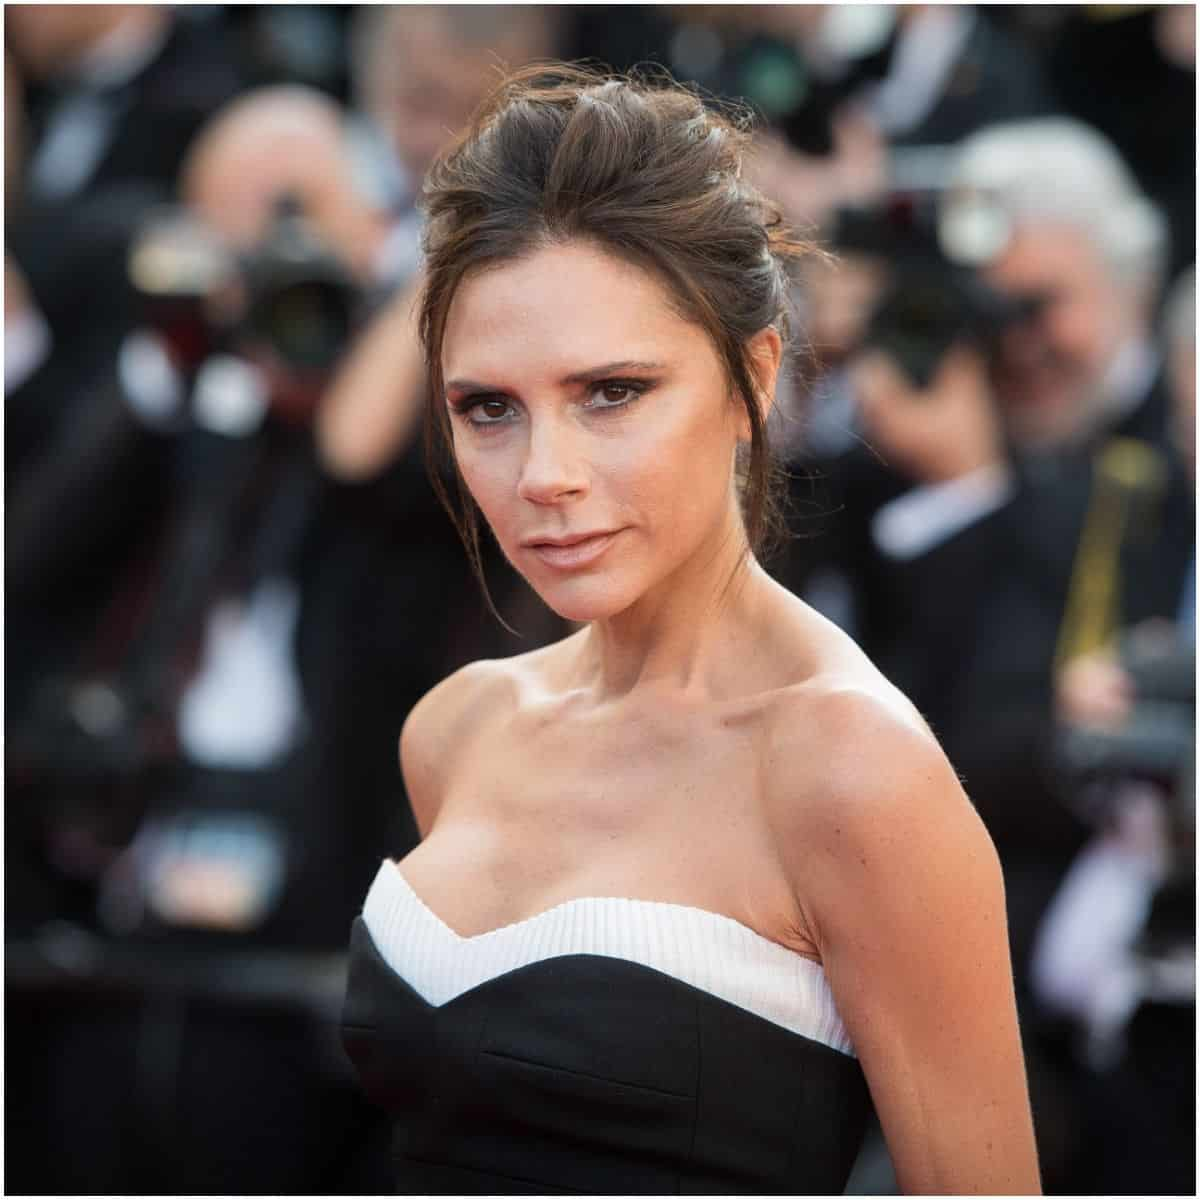 what is the net worth of Victoria Beckham